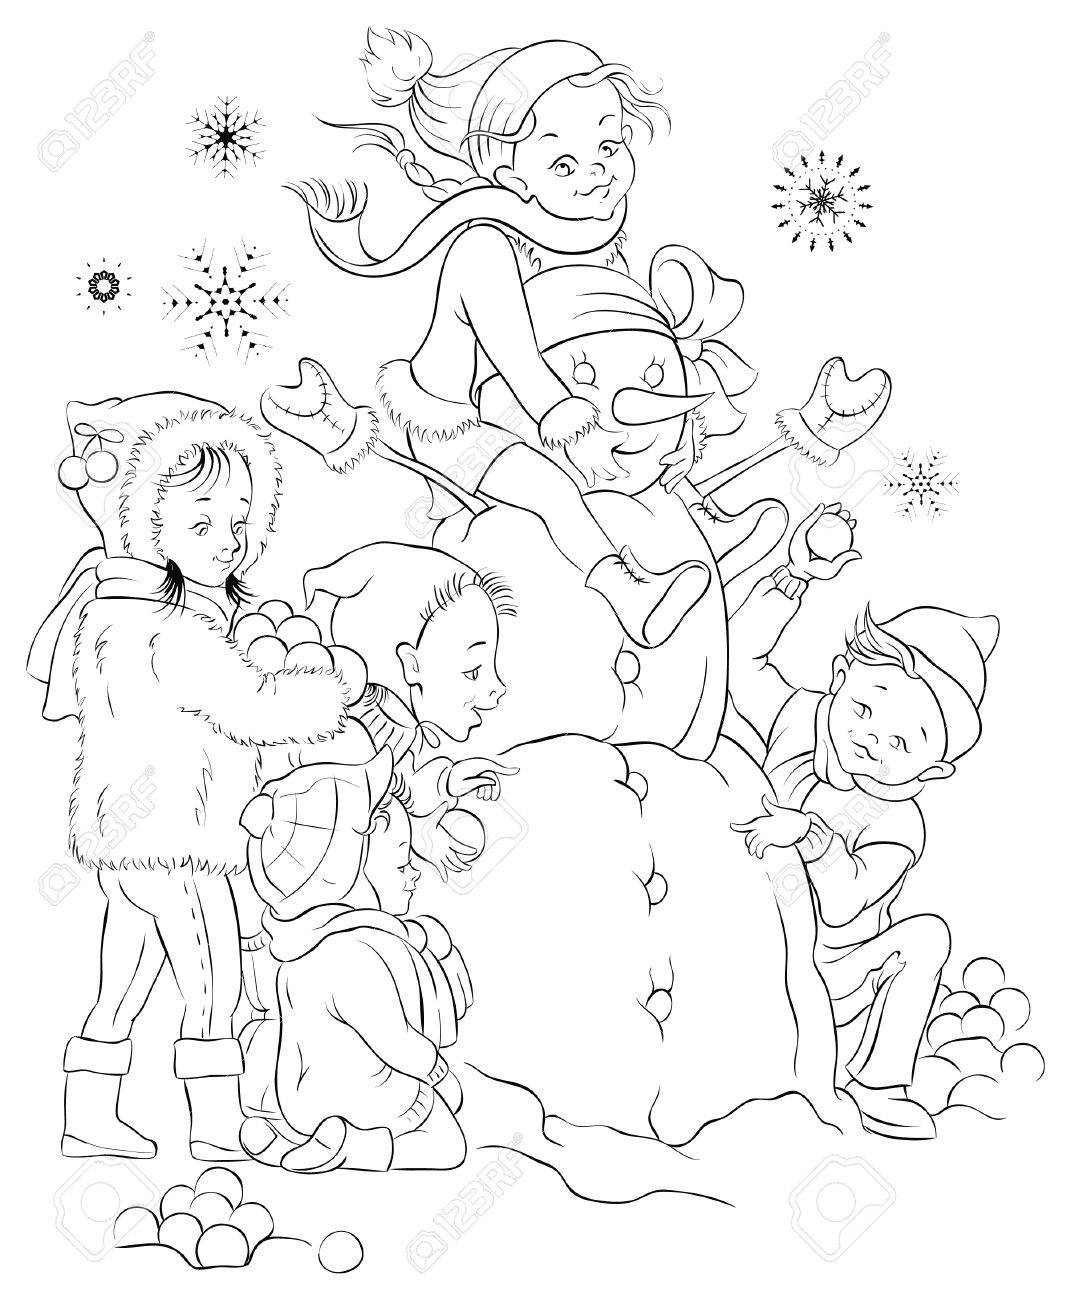 winter games children and snowman colouring page royalty free